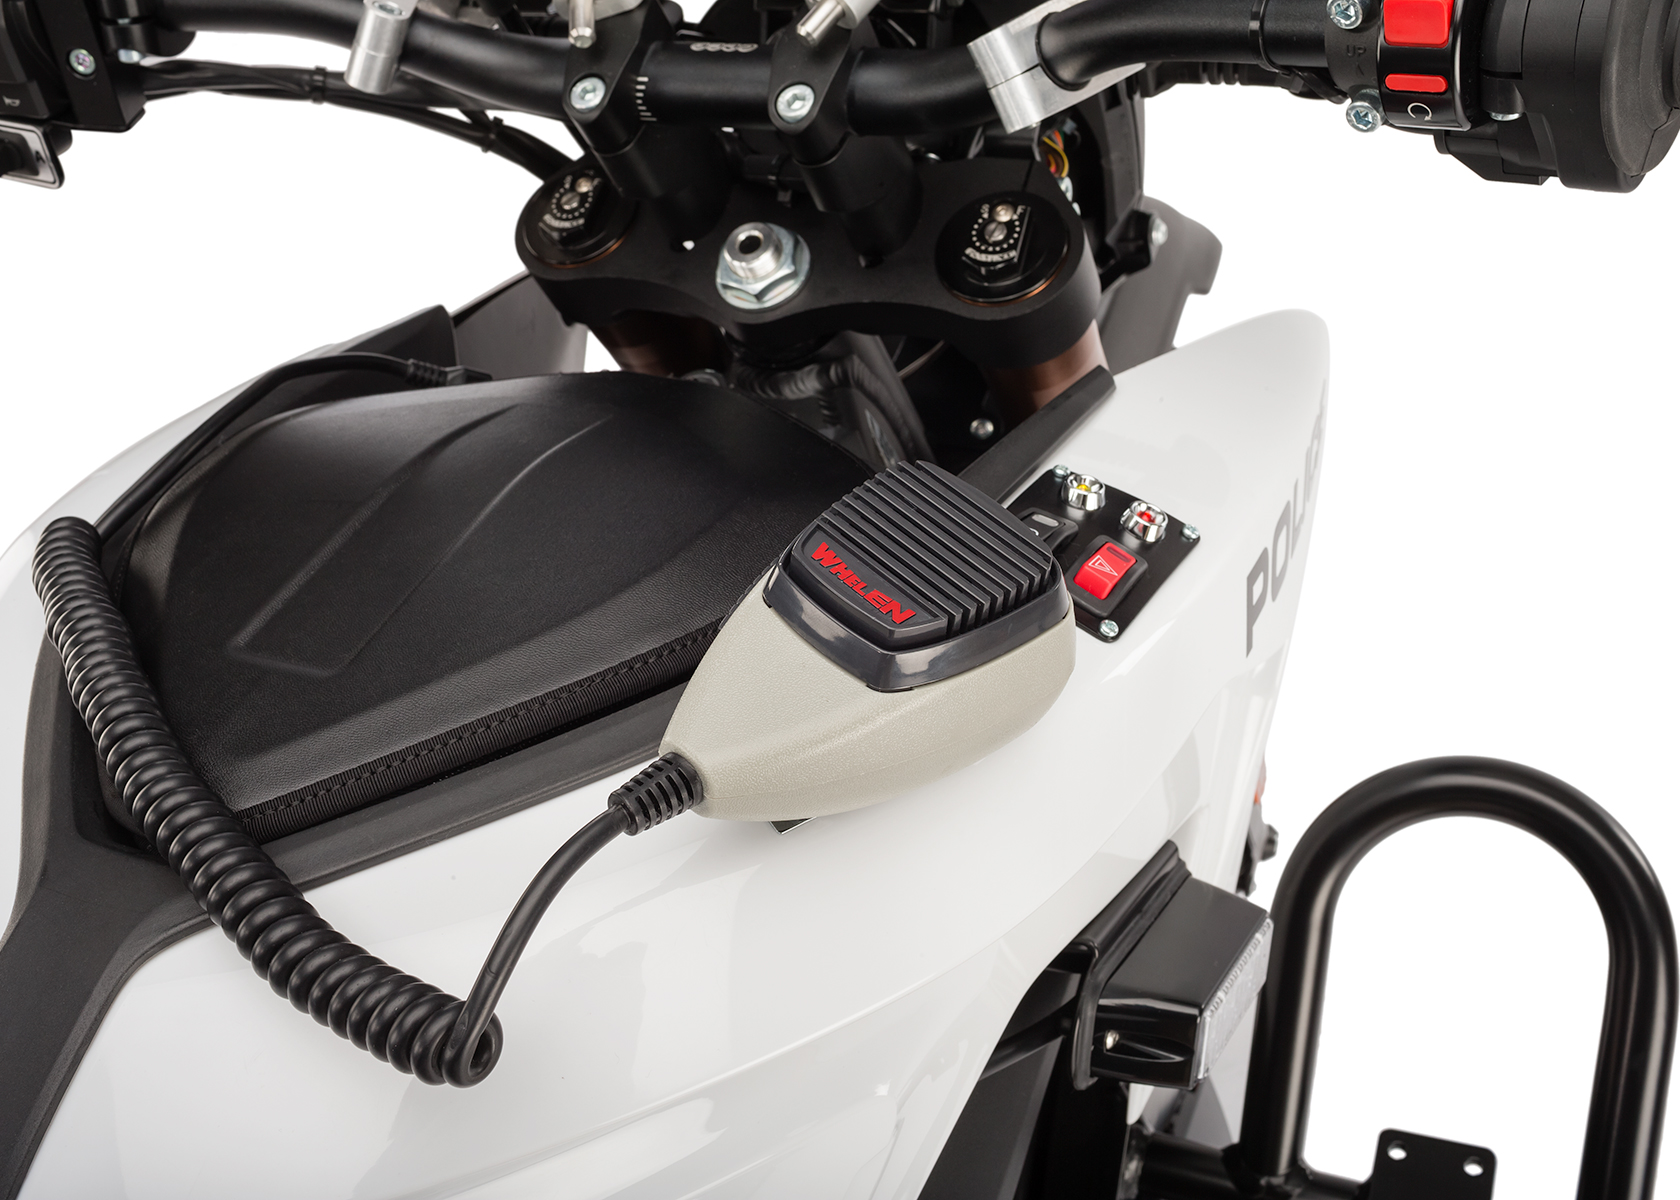 2013 Zero Police Electric Motorcycle Microphone